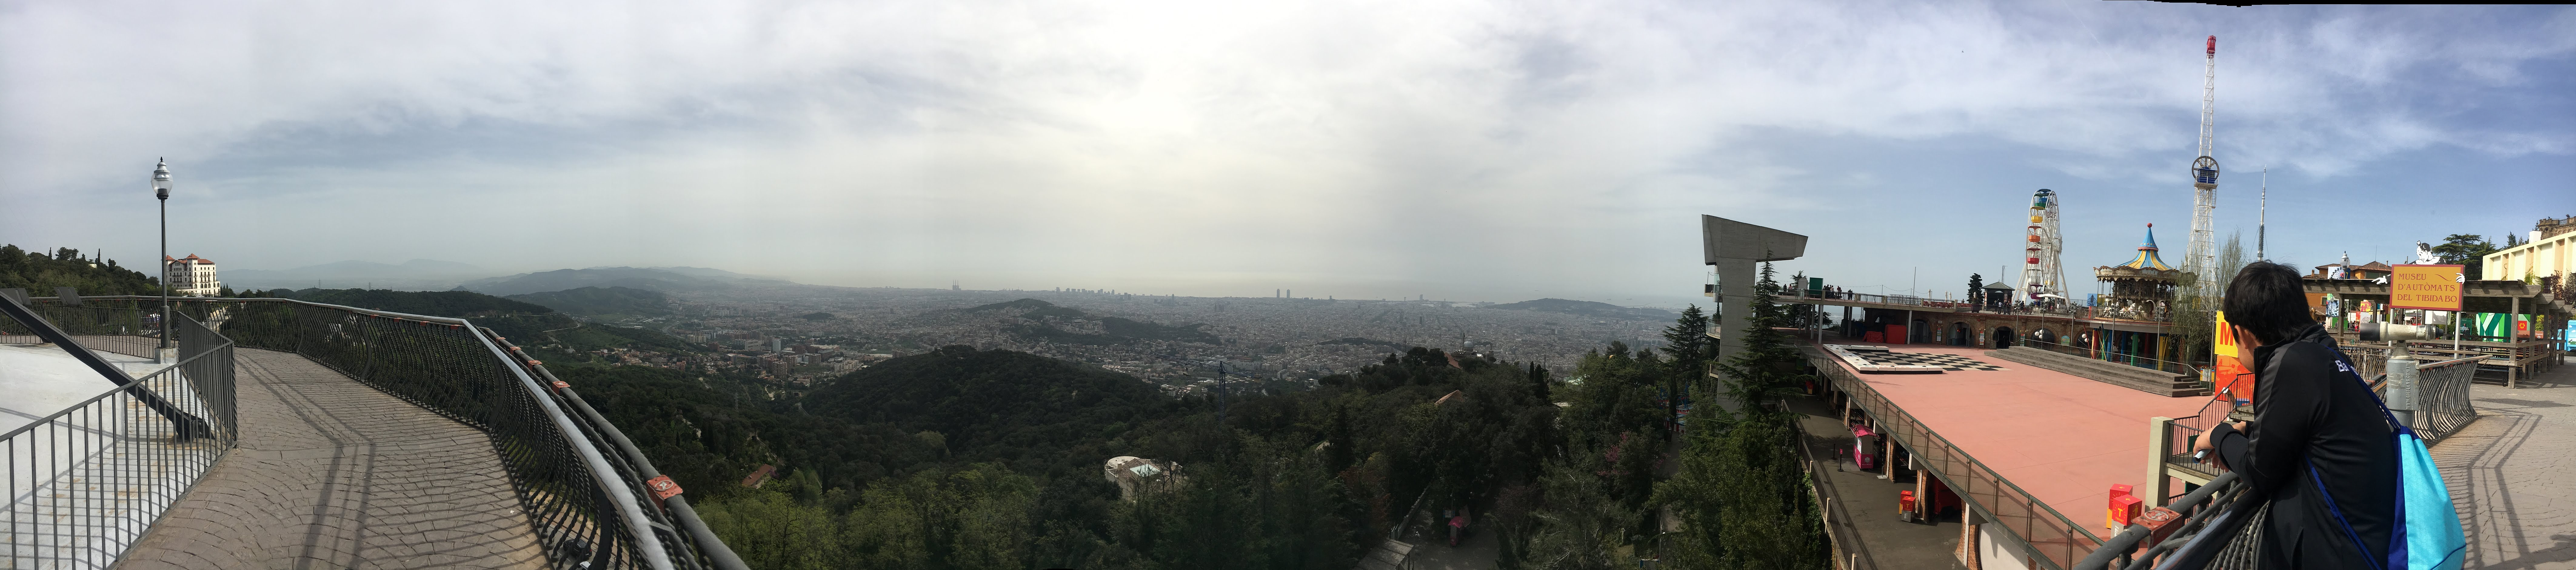 The View from Tibidabo